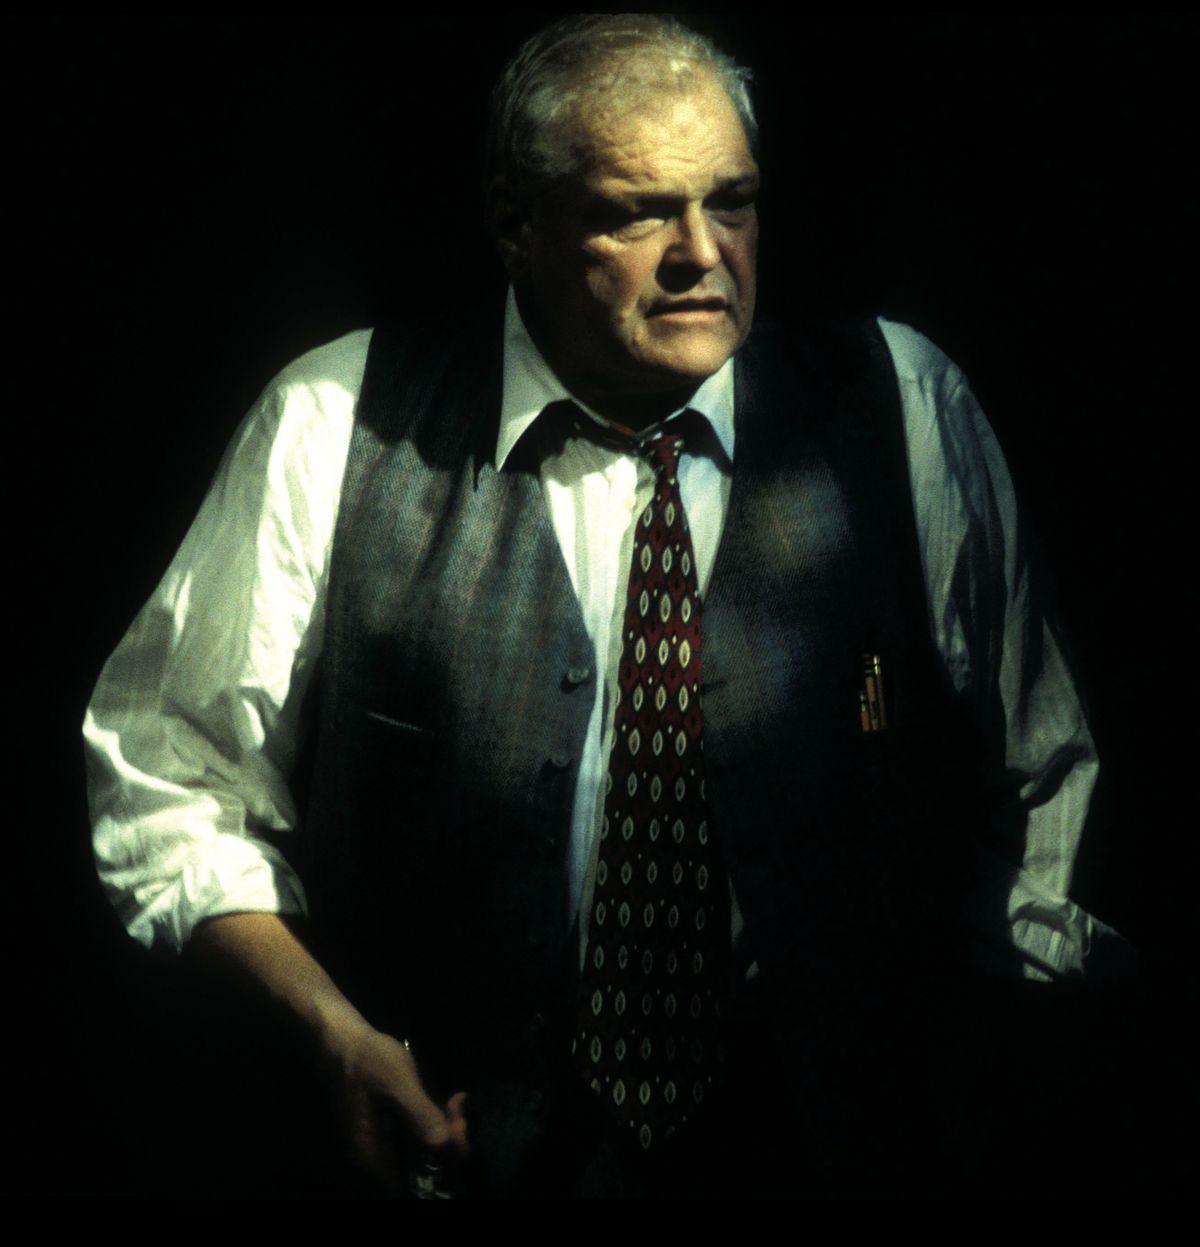 Brian Dennehy (Willy Loman) in Death of a Salesman by Arthur Miller, directed by Robert Falls at Goodman Theatre (September 18 – November 7, 1998).